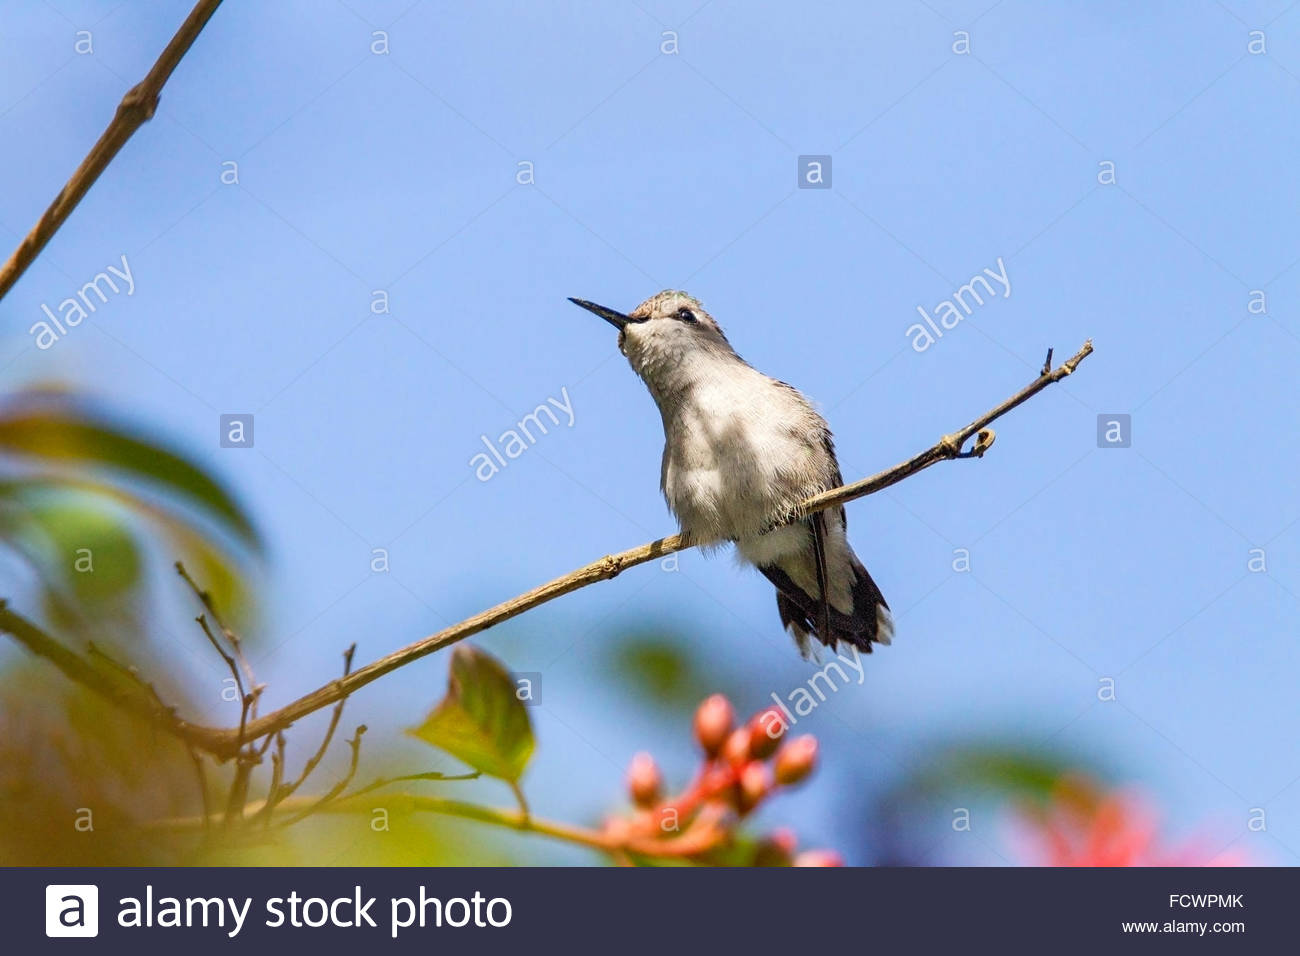 What is the smallest bird in the world